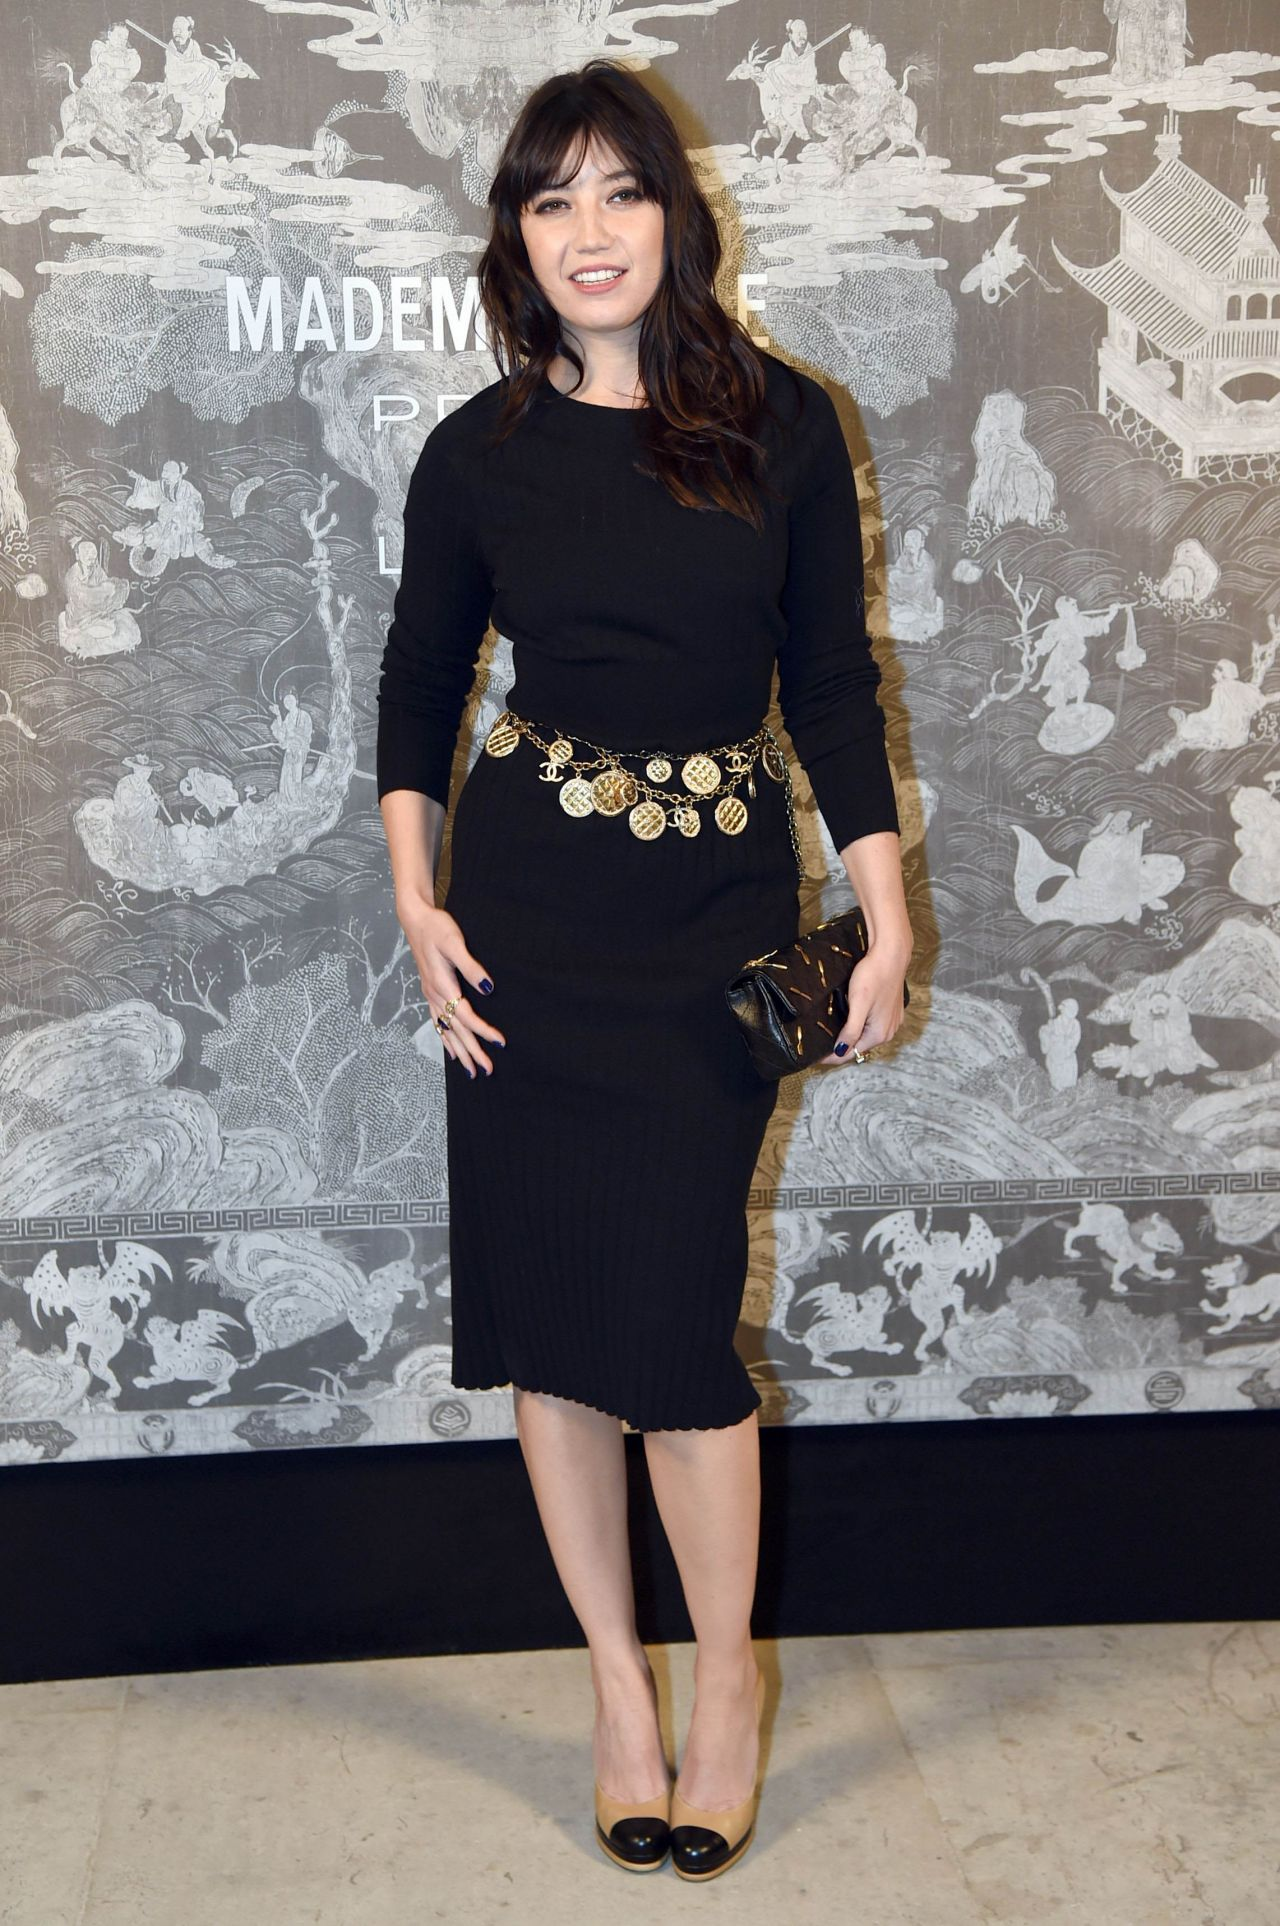 daisy-lowe-chanel-exhibition-party-in-london-october-2015_3